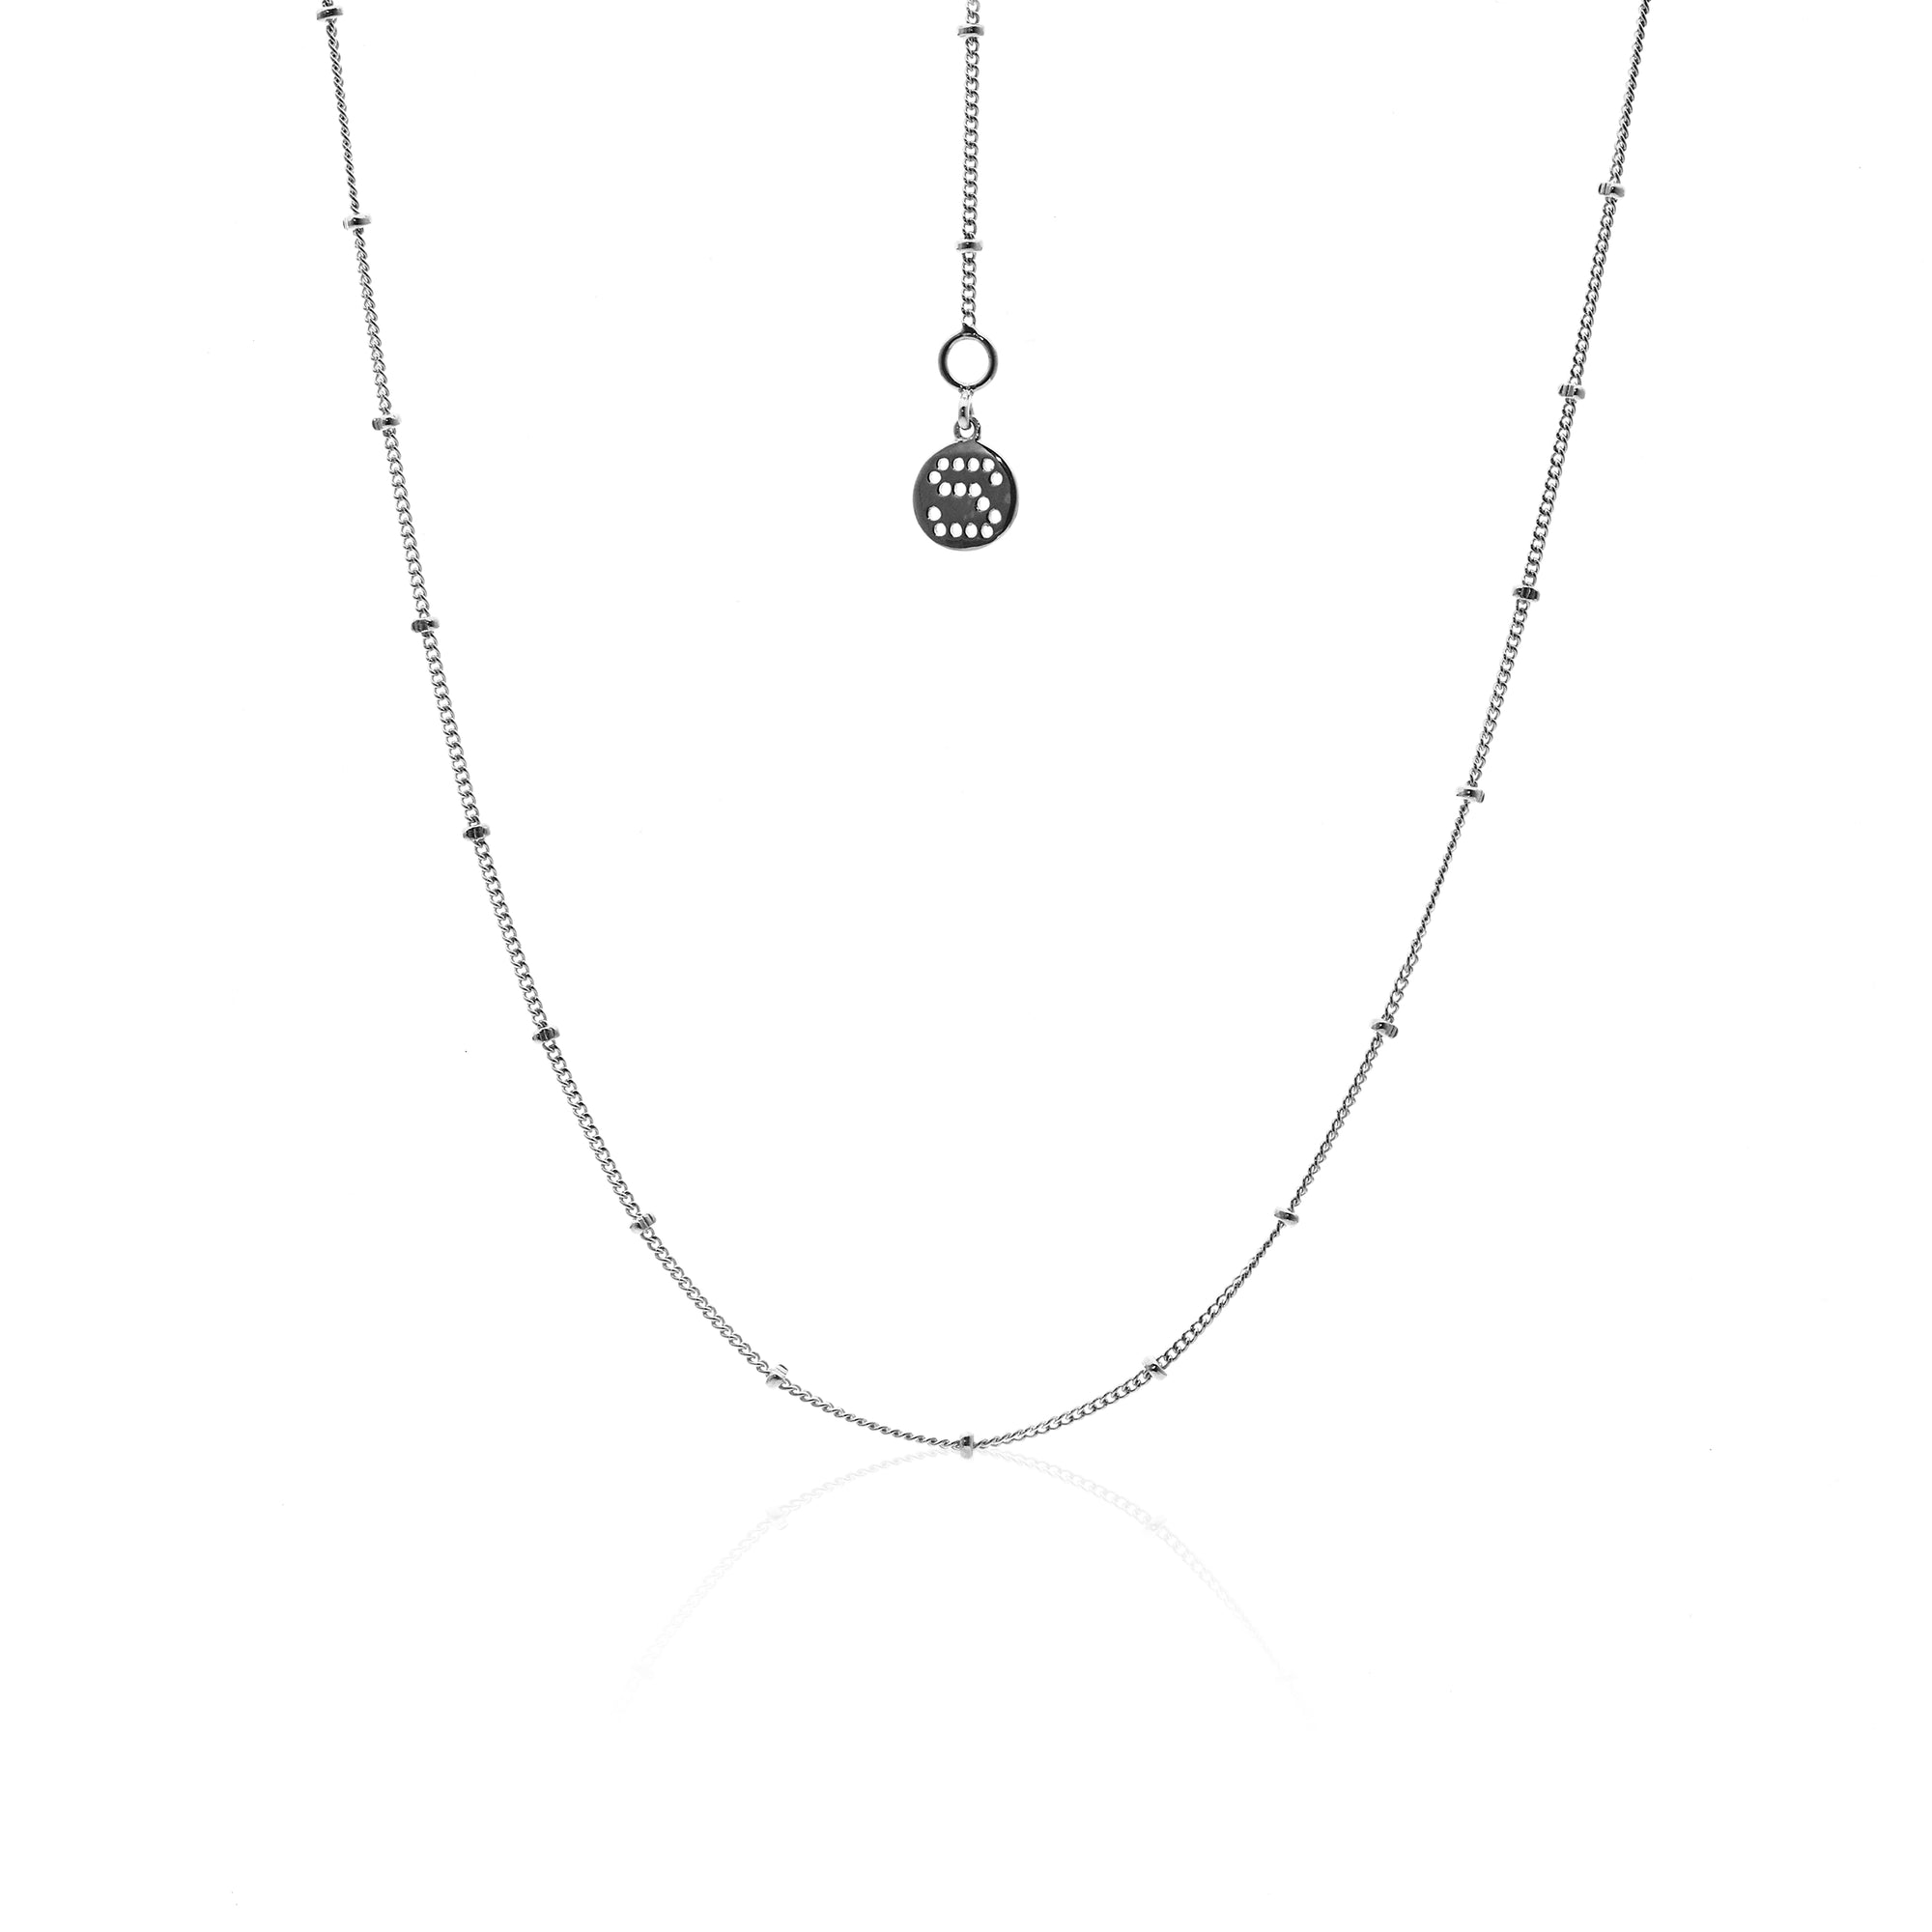 Silk&Steel Jewellery Long Tempo Sterling Silver Choker Necklace From Aria Collection